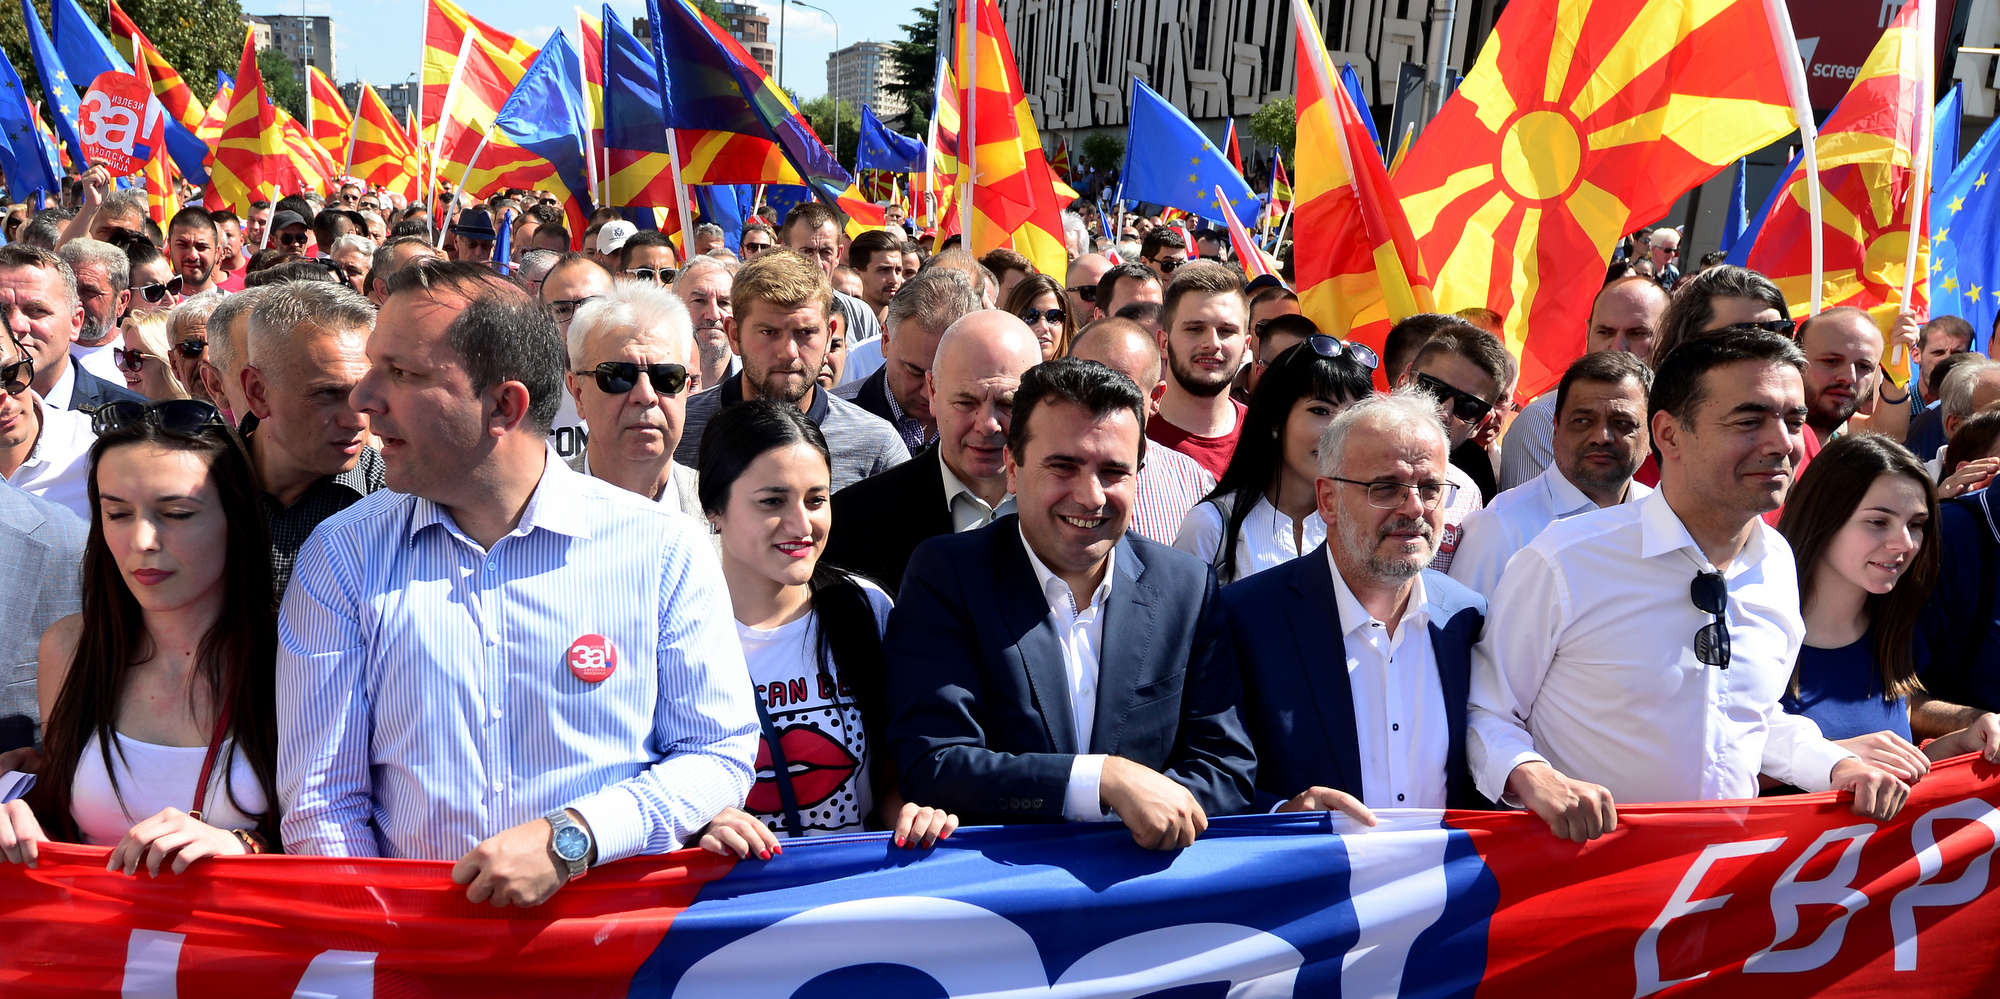 March for European Macedonia in Skopje